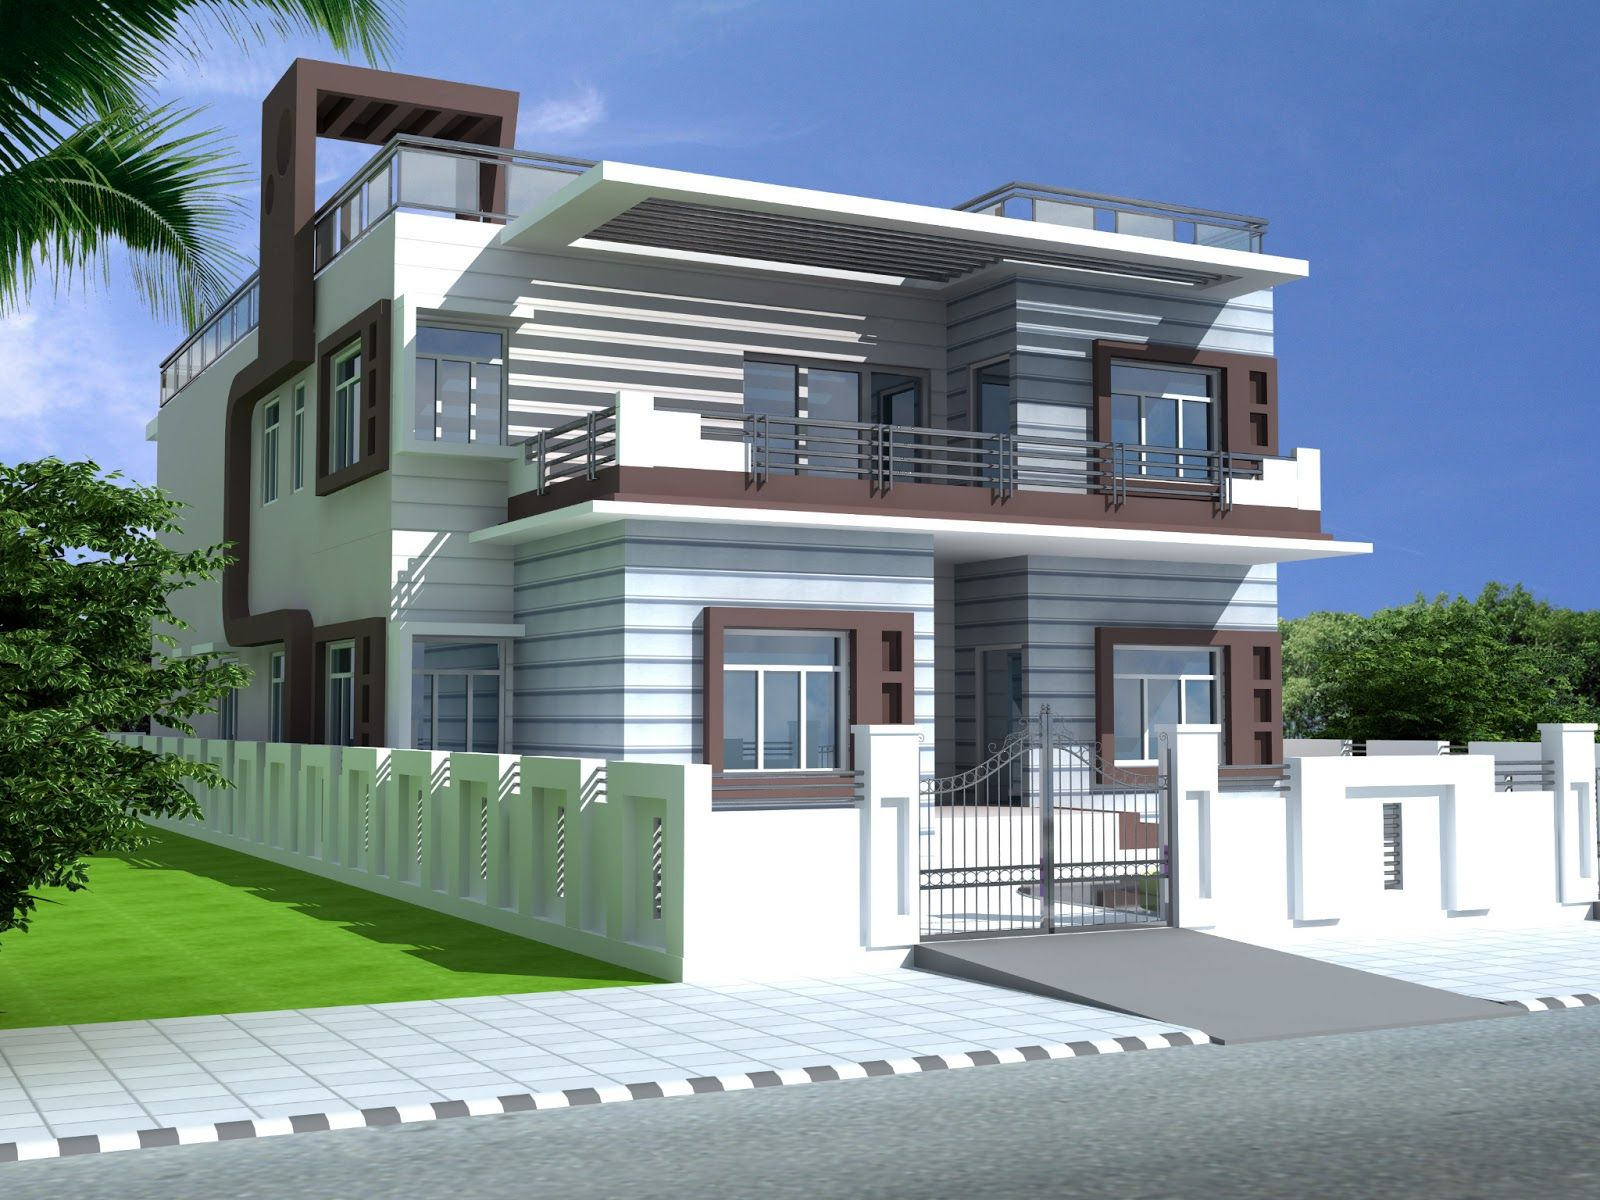 6 bedrooms duplex house design in 390m2 13m x 30m for House building front design